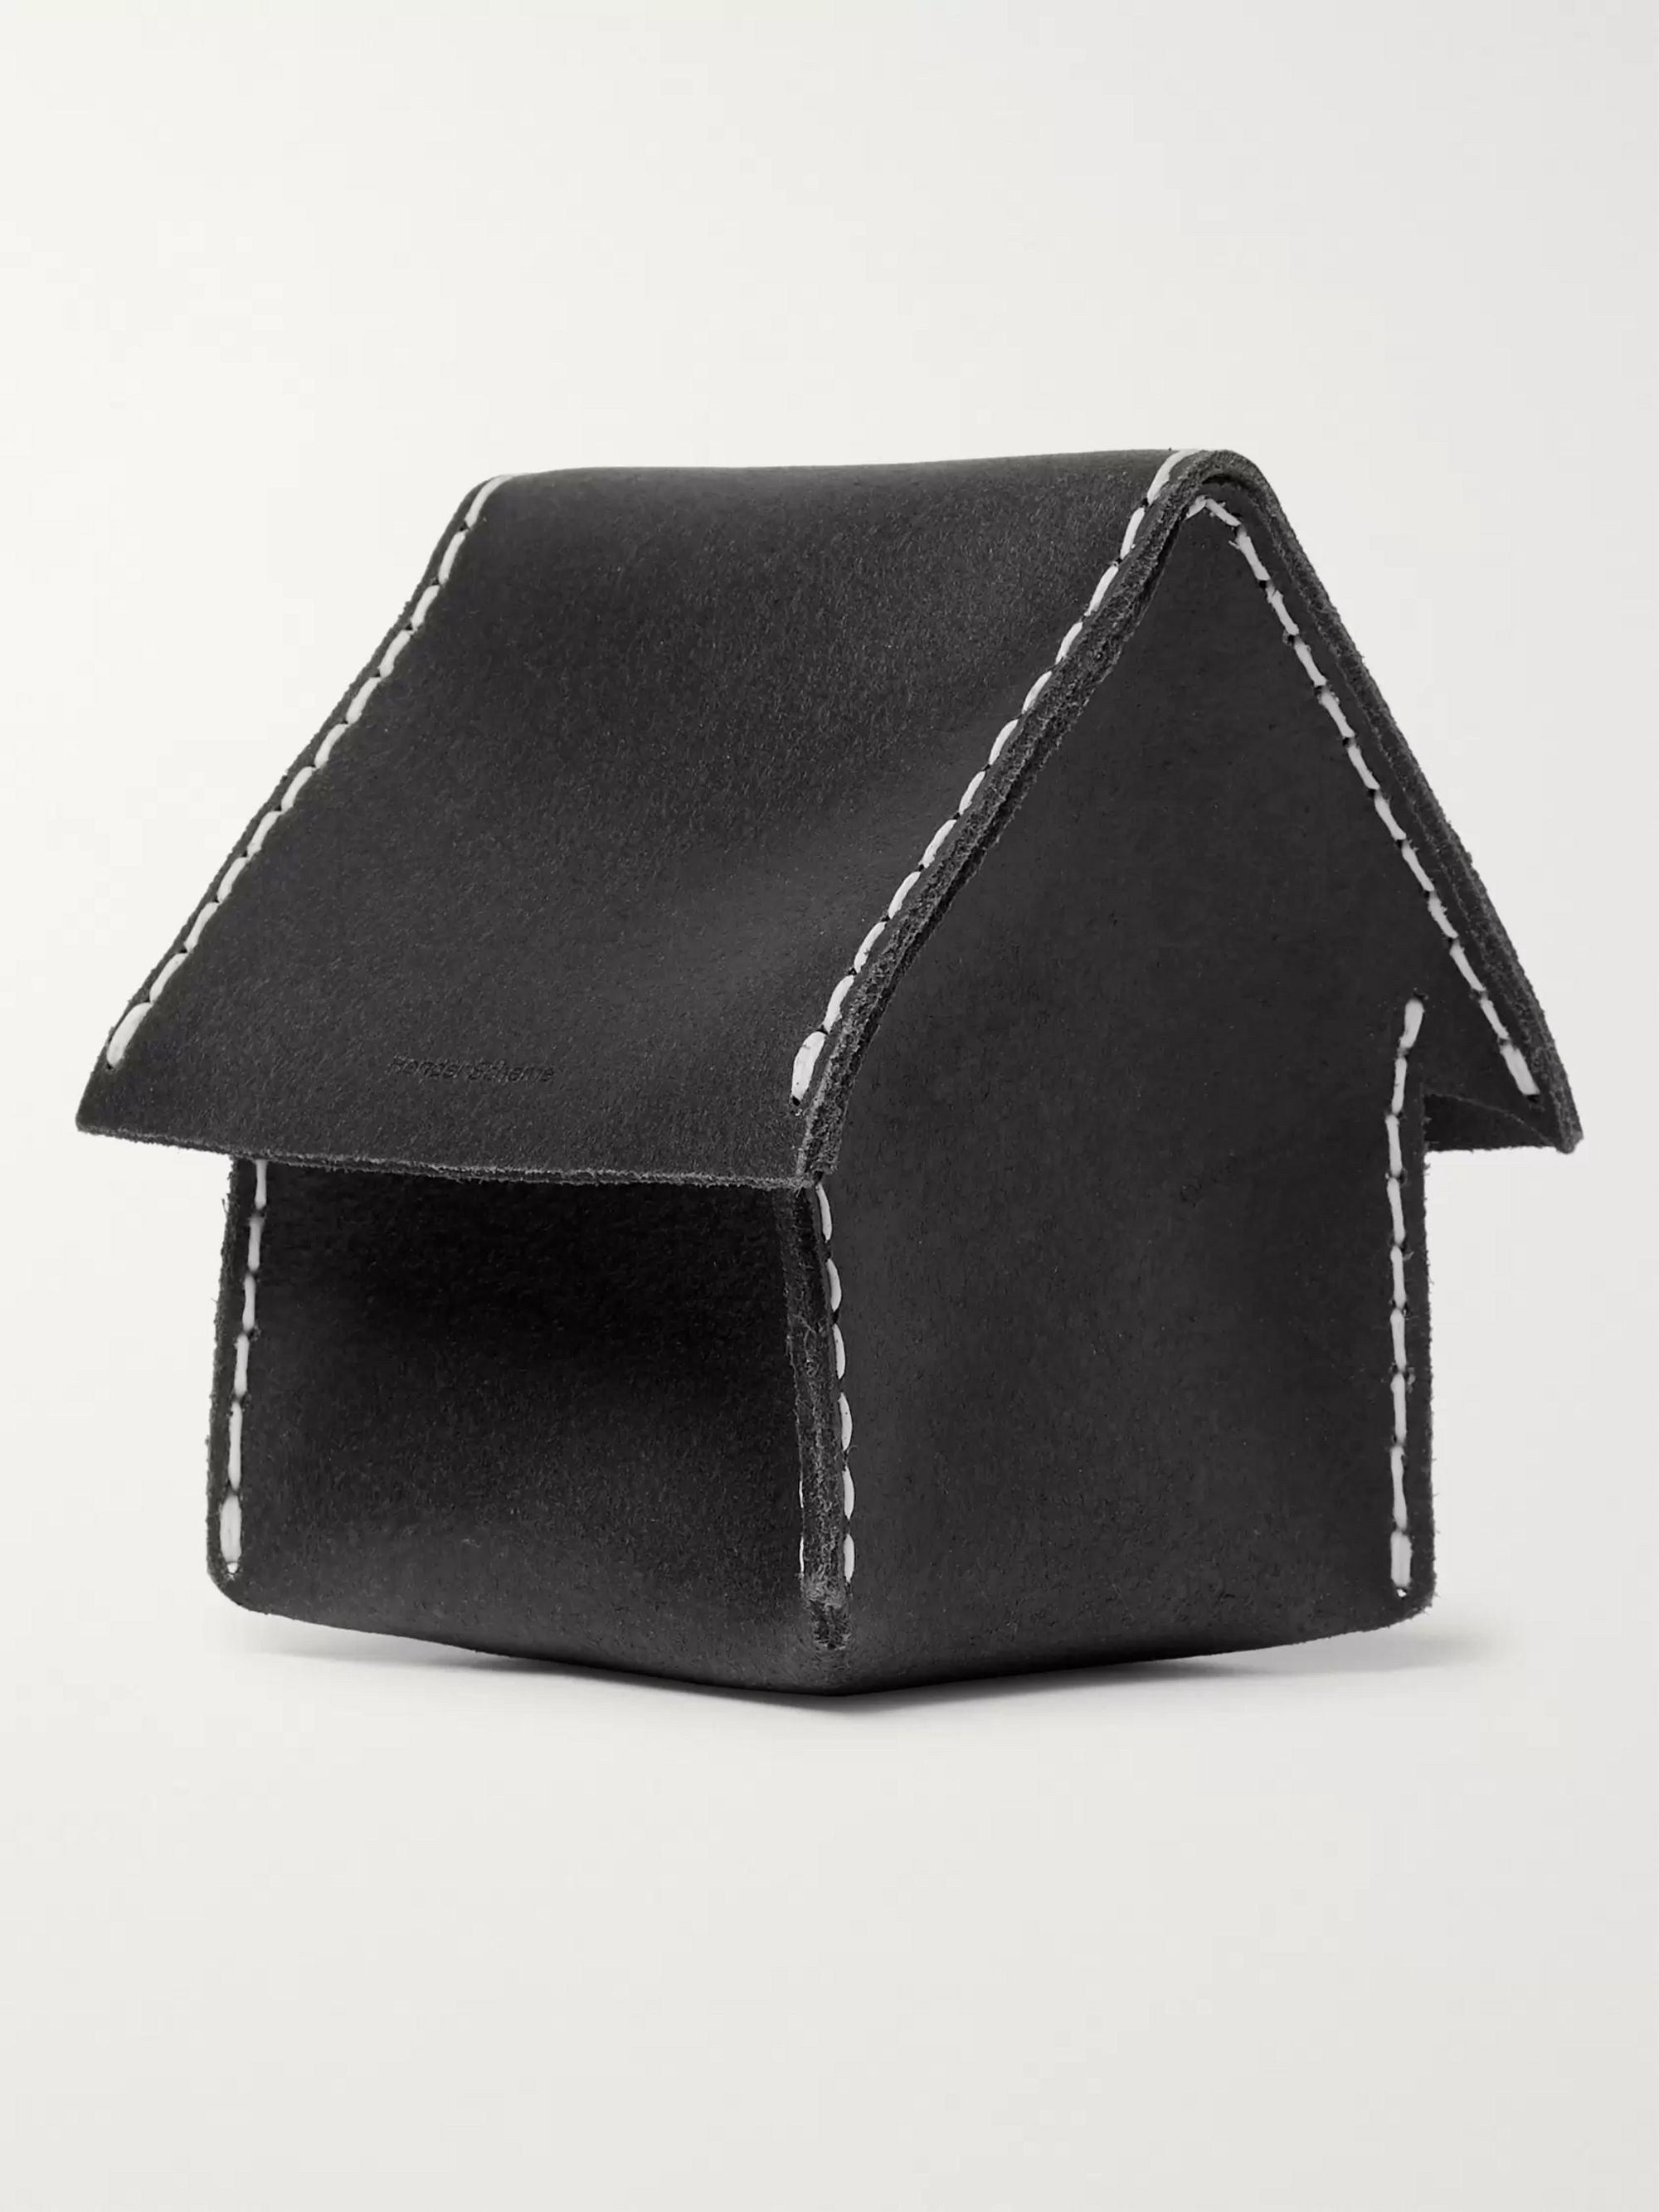 Hender Scheme Leather Money Box